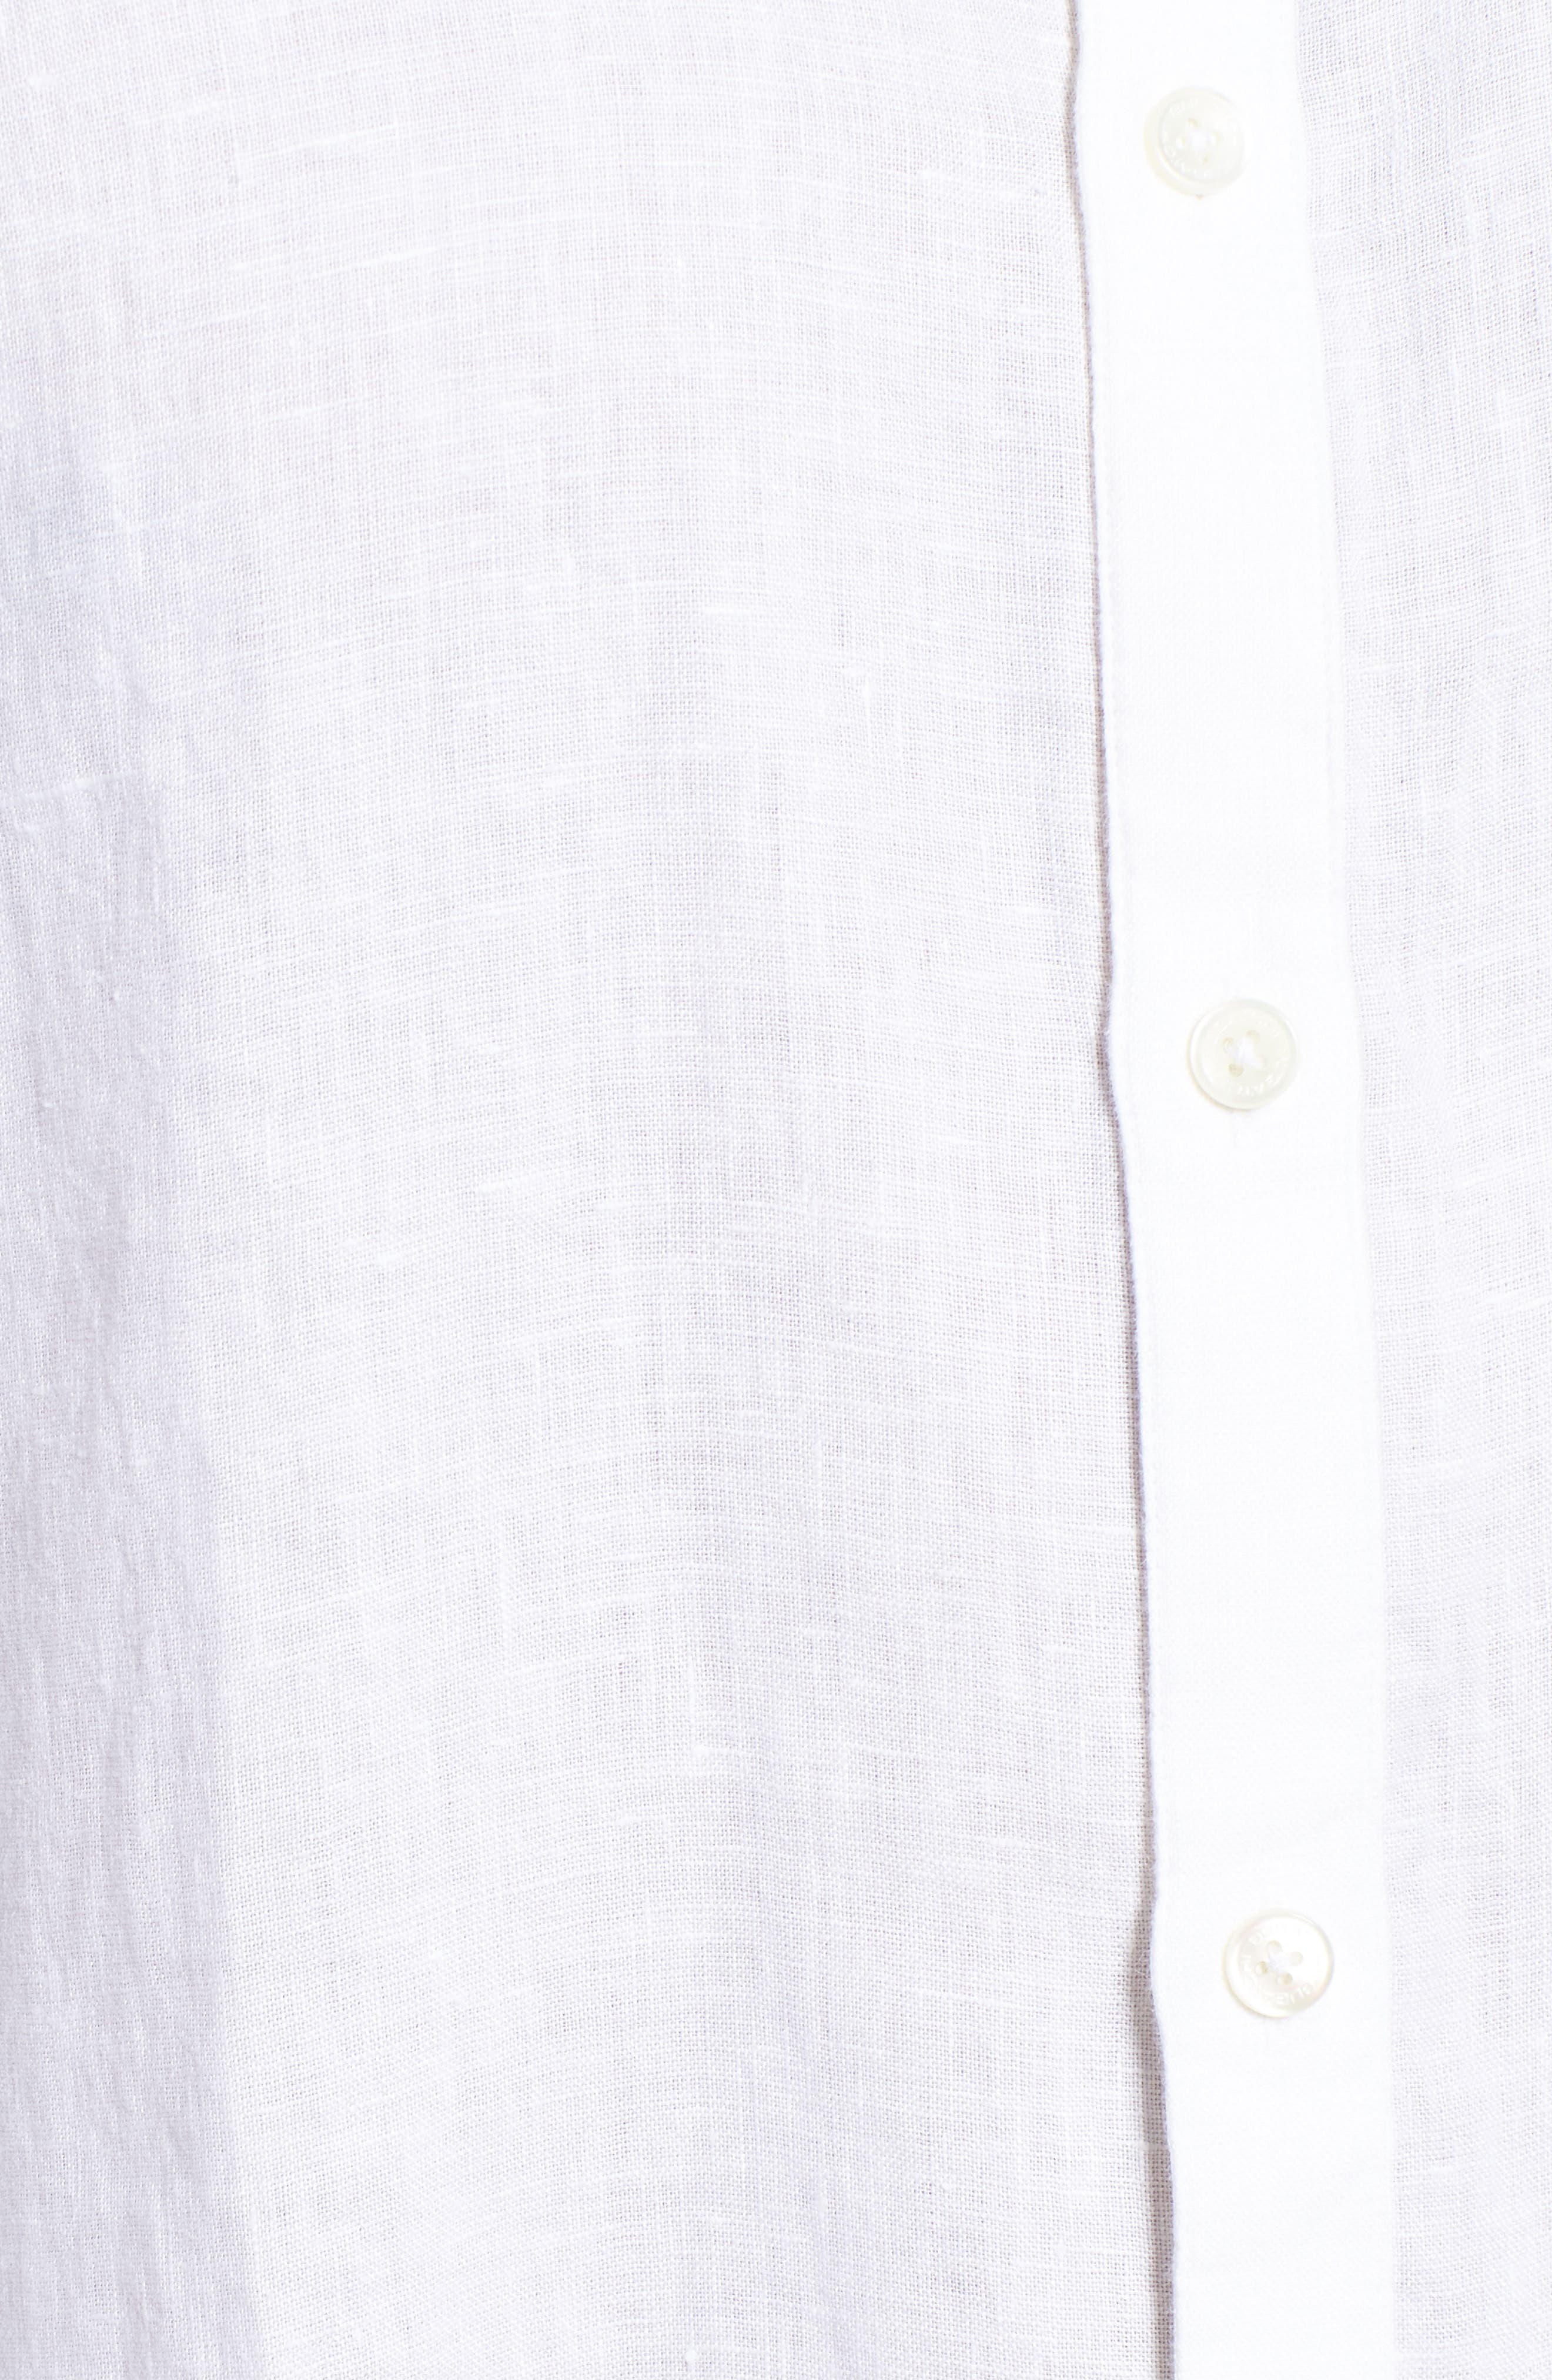 Classic Fit Band Collar Sport Shirt,                             Alternate thumbnail 5, color,                             WHITE